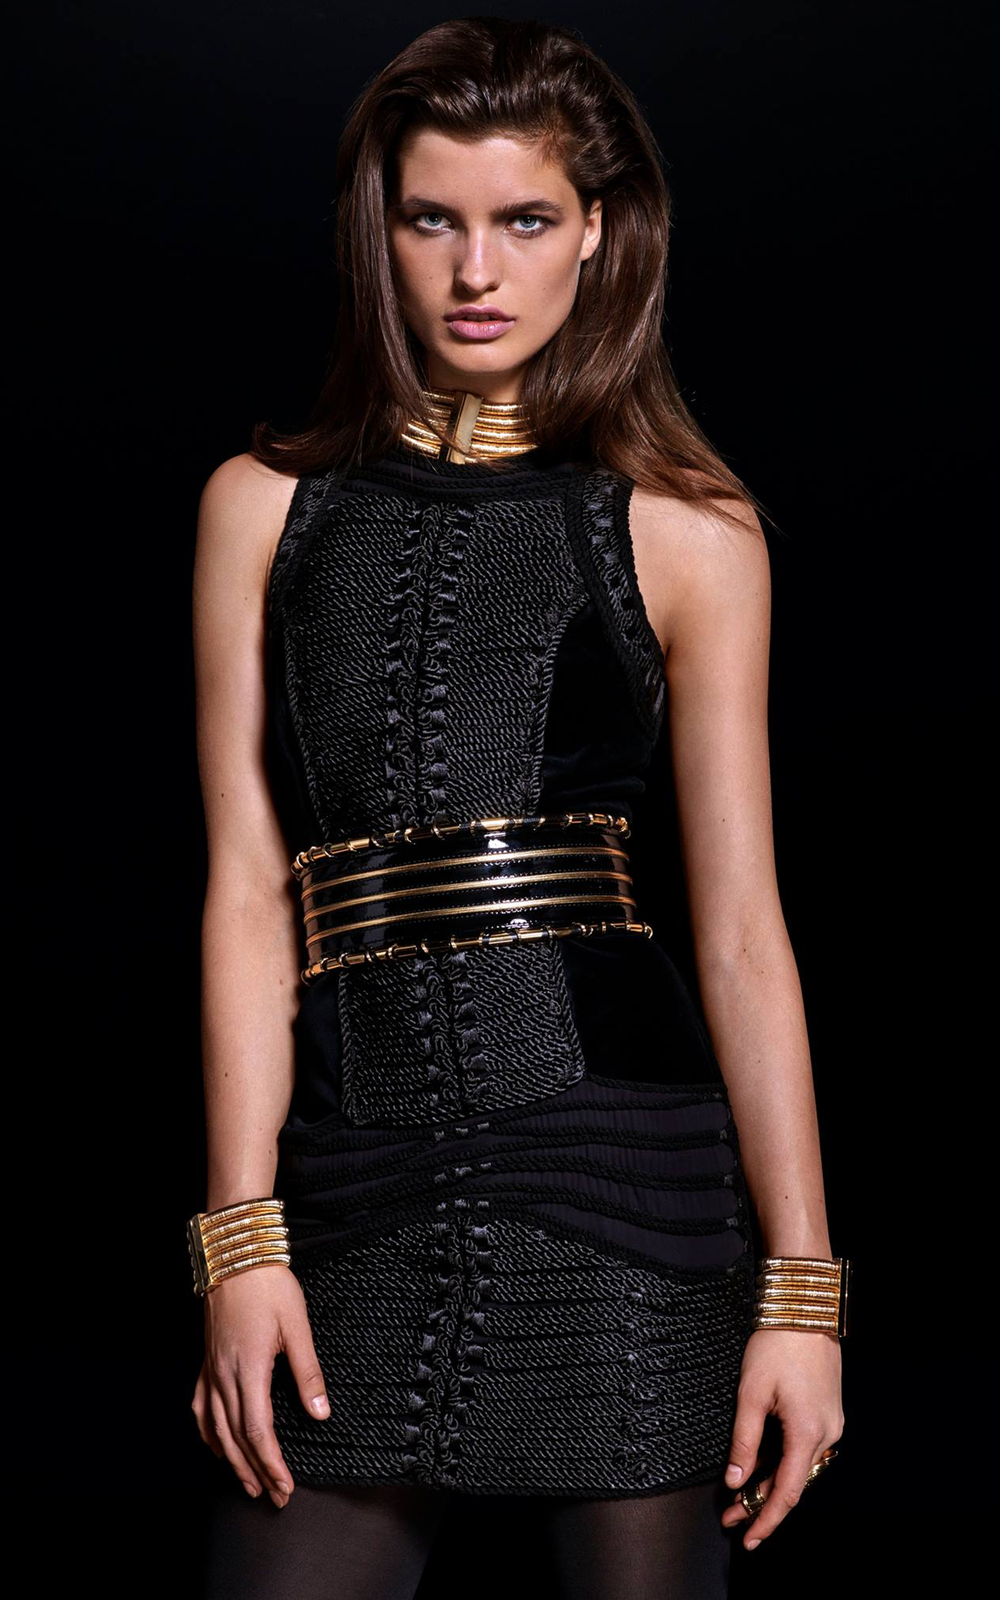 BALMAIN x H&M Collaboration